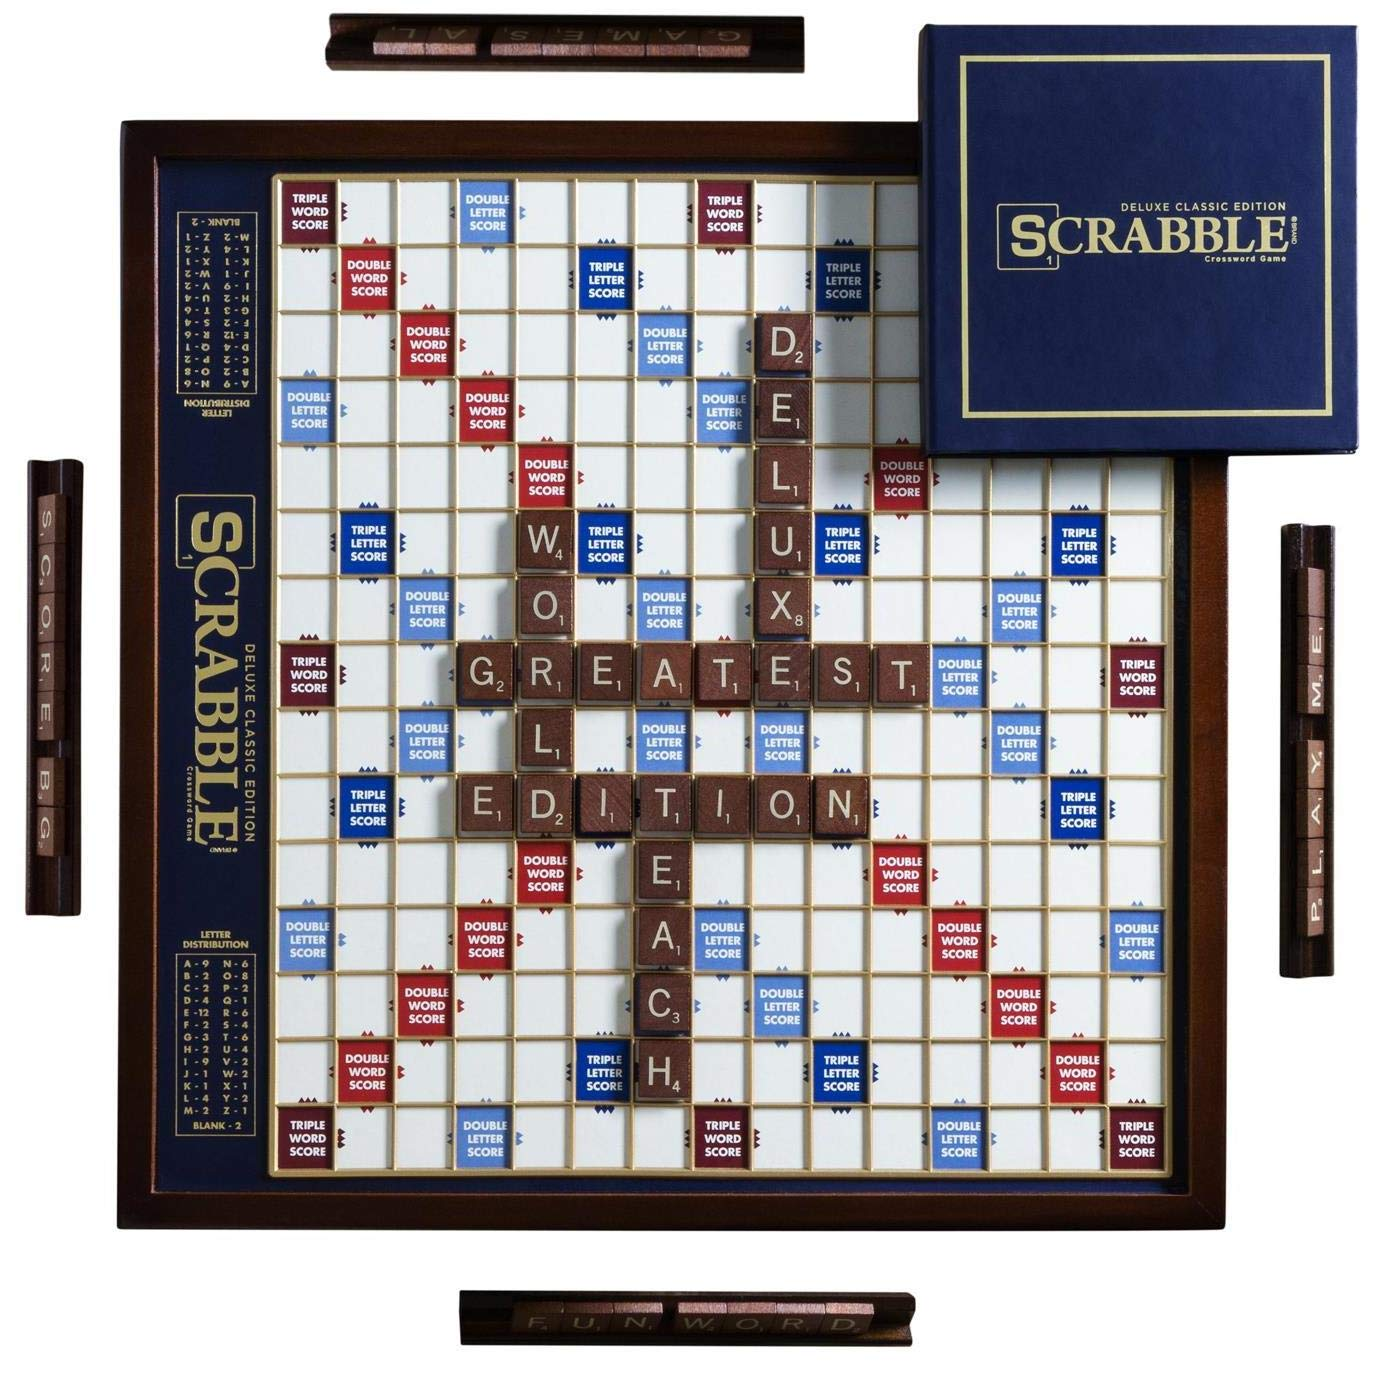 Scrabble Deluxe Edition with Rotating Wooden Game Board by WS Game Company (Image #1)